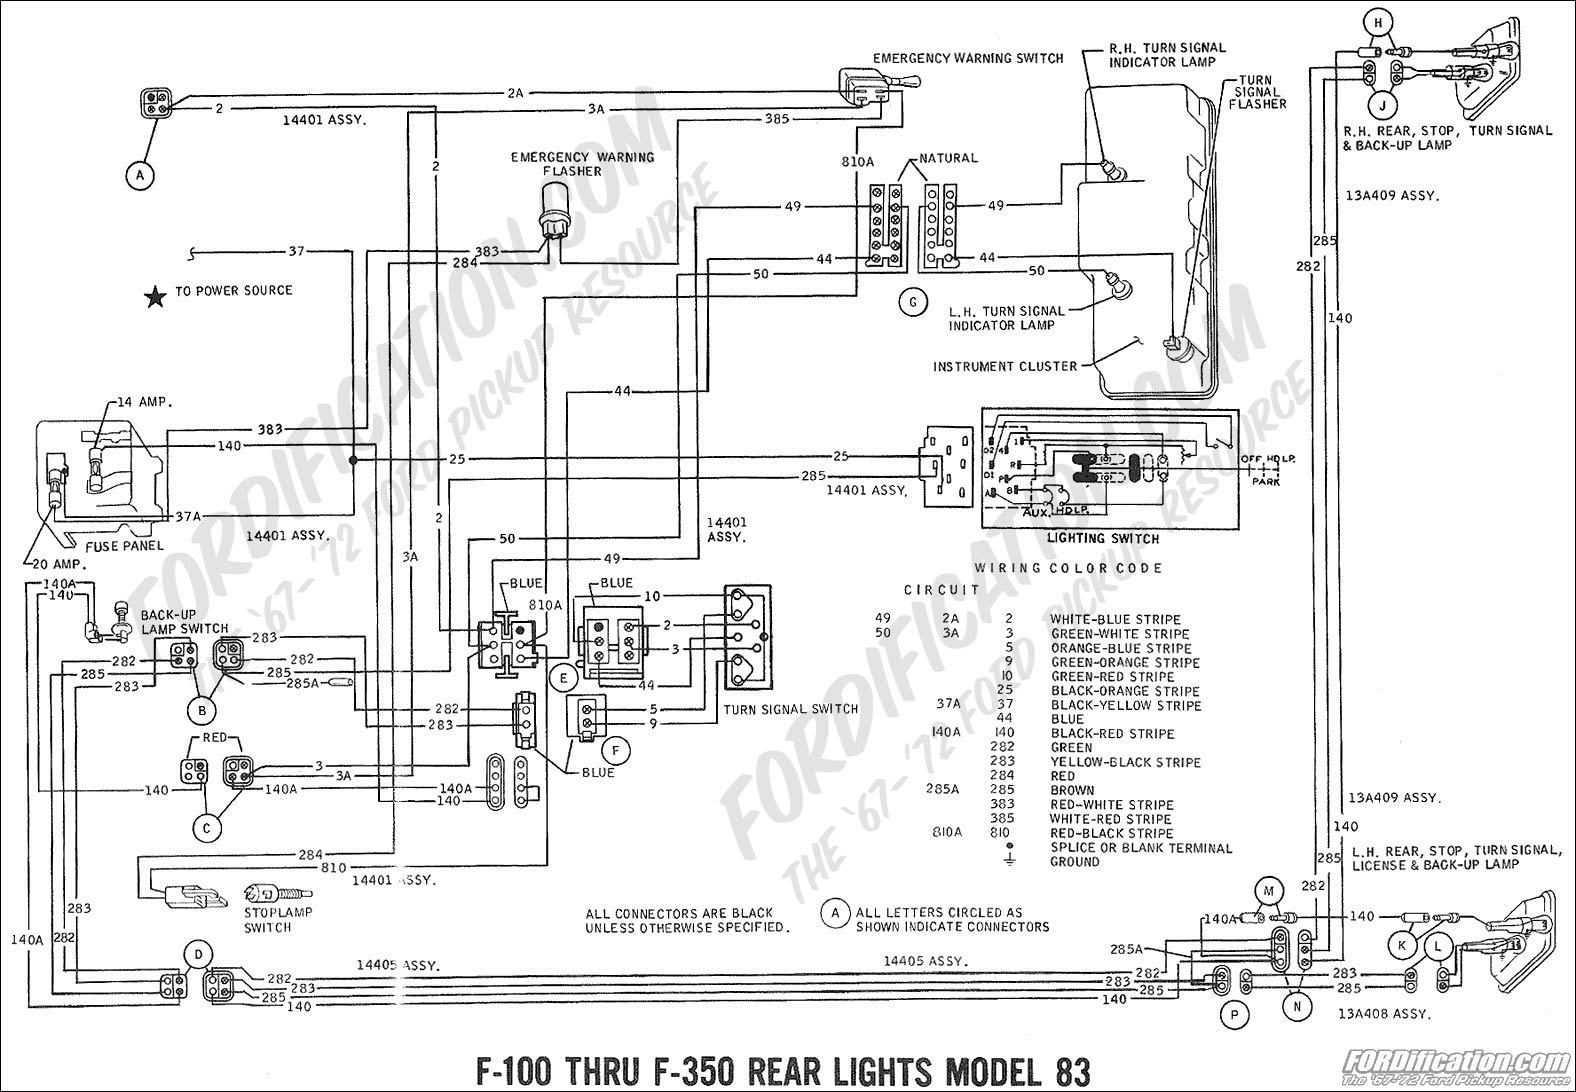 1966 Ford Truck Turn Signal Wiring | Wiring Diagram Database